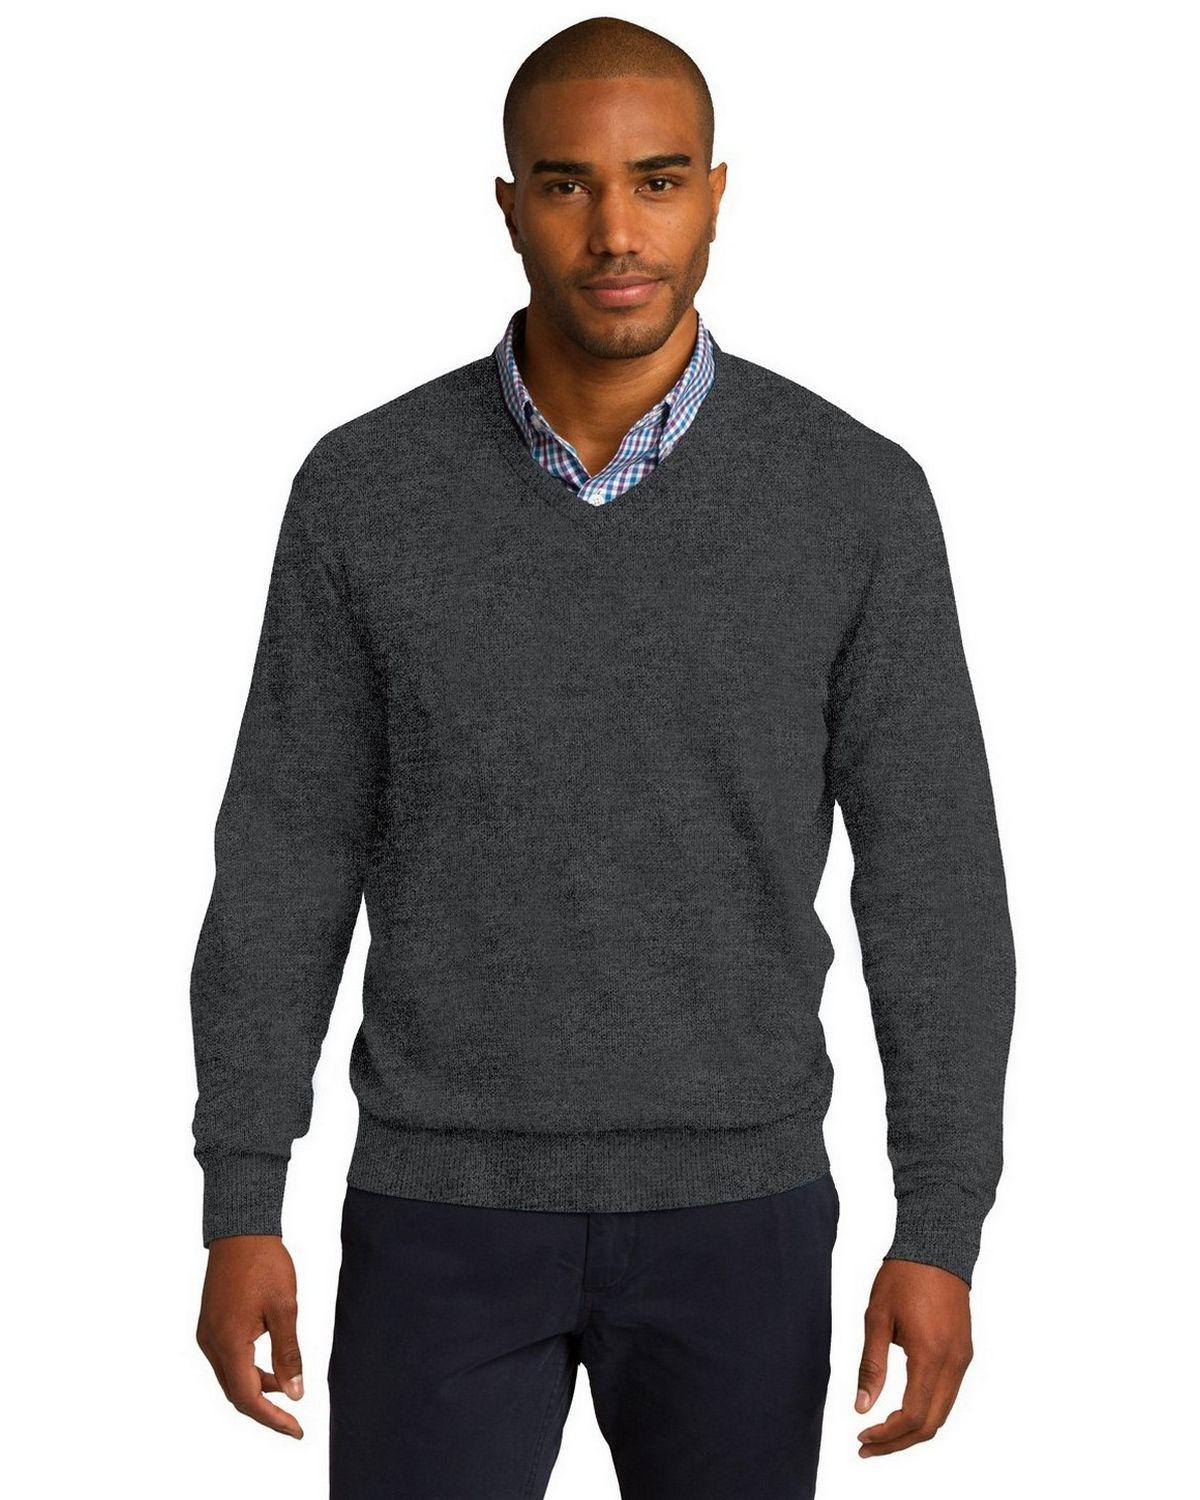 Port Authority SW285 Sweater - Charcoal Heather - XL SW285